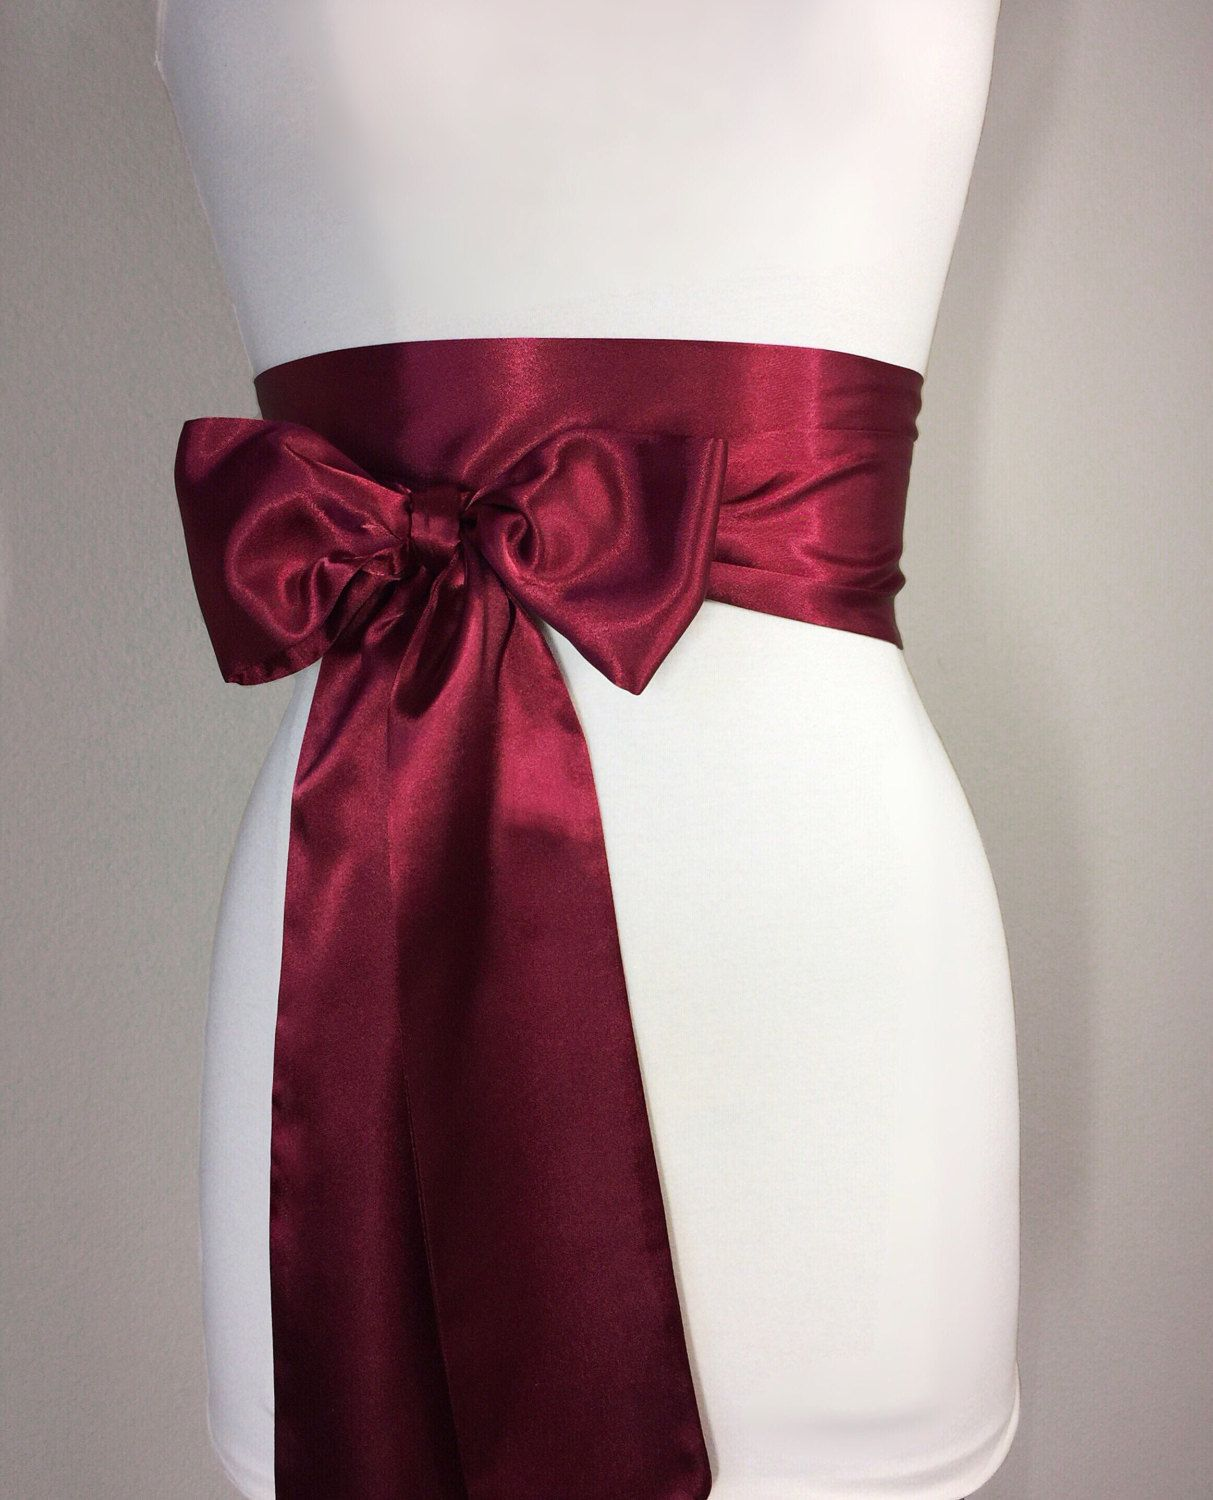 Burgundy Sash Burgundy Satin Sash Maroon Sash Holiday Sash Wine Sash Belt Wrap Belt Obi Belt Wedding Sash Bridal Sash Satin Swank In 2020 Wedding Dress Belt Bridesmaid Sash Belt Bridal Sash